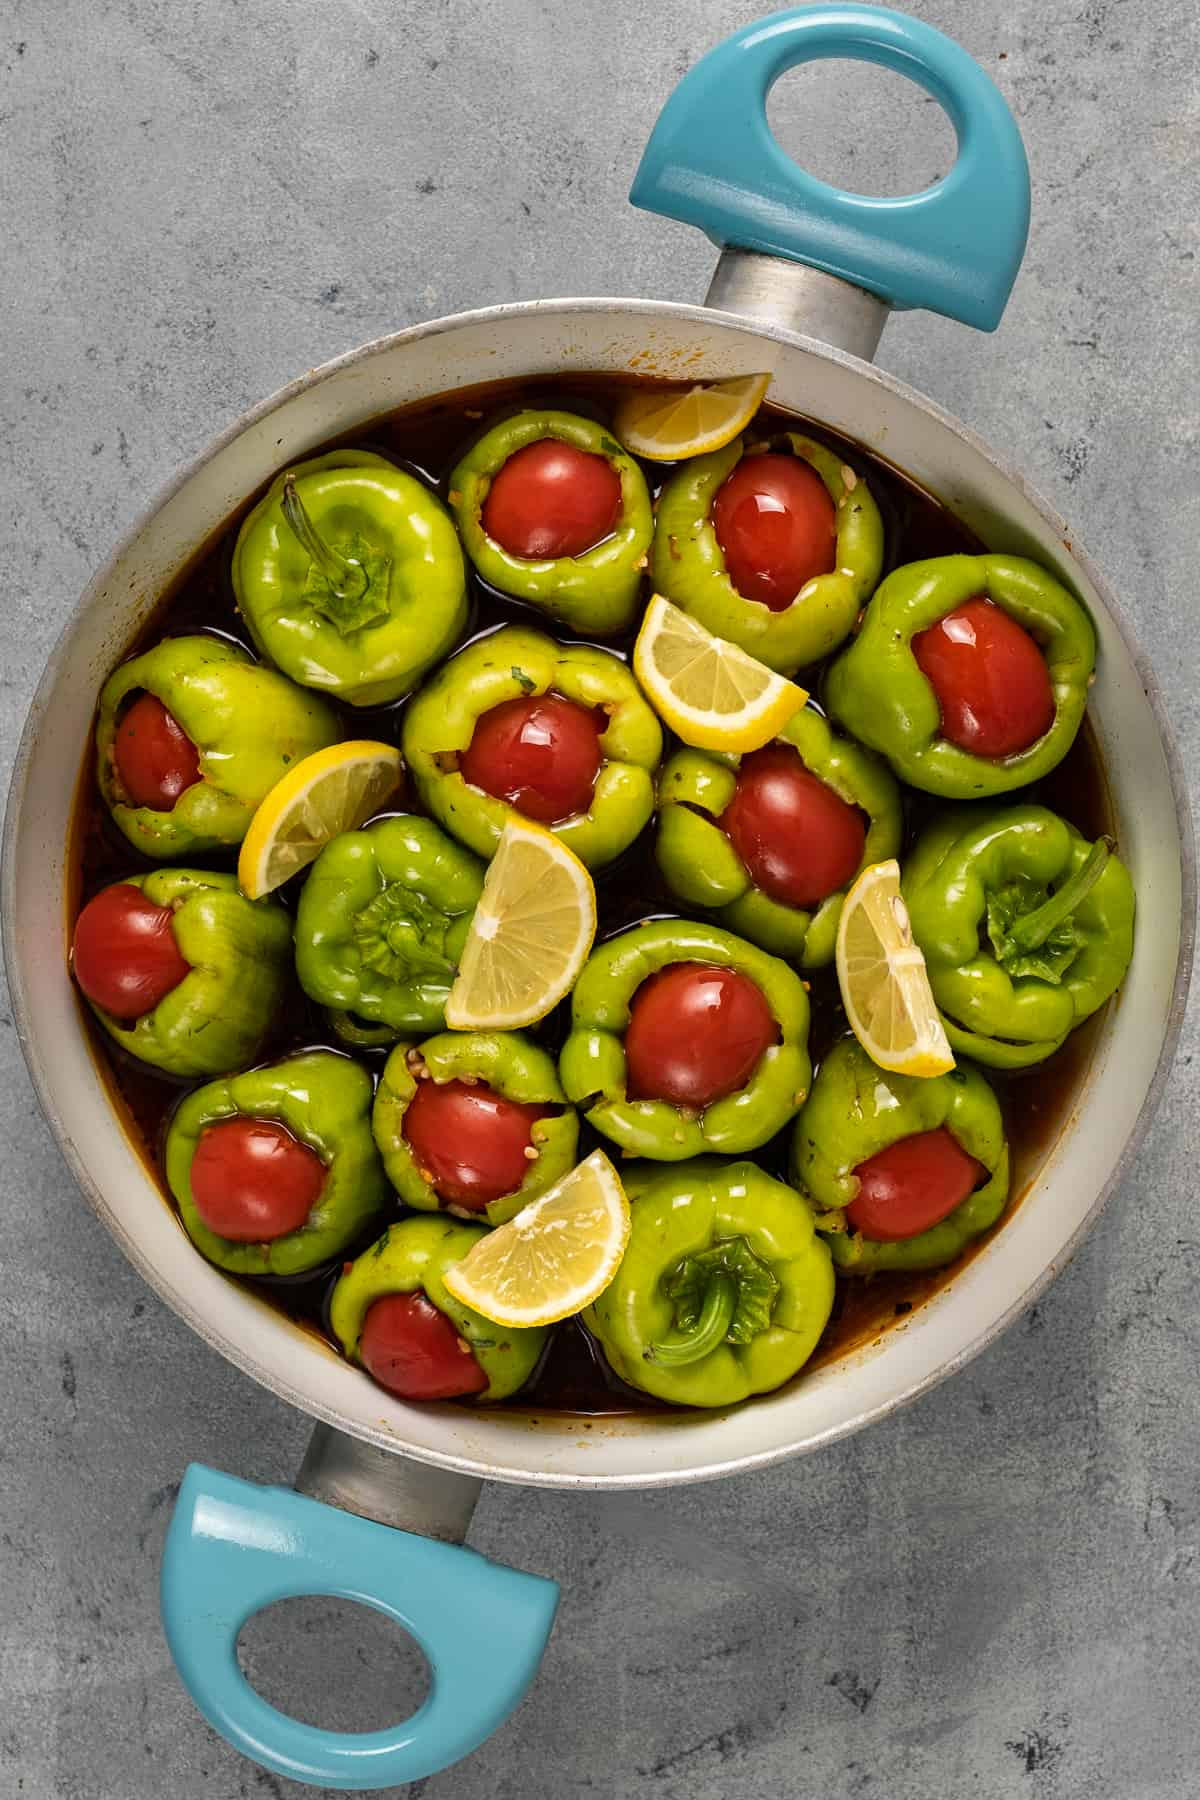 Turkish green peppers stuffed with a rice filling, topped with halved cherry tomatoes and garnished with lemon slices in a pan.